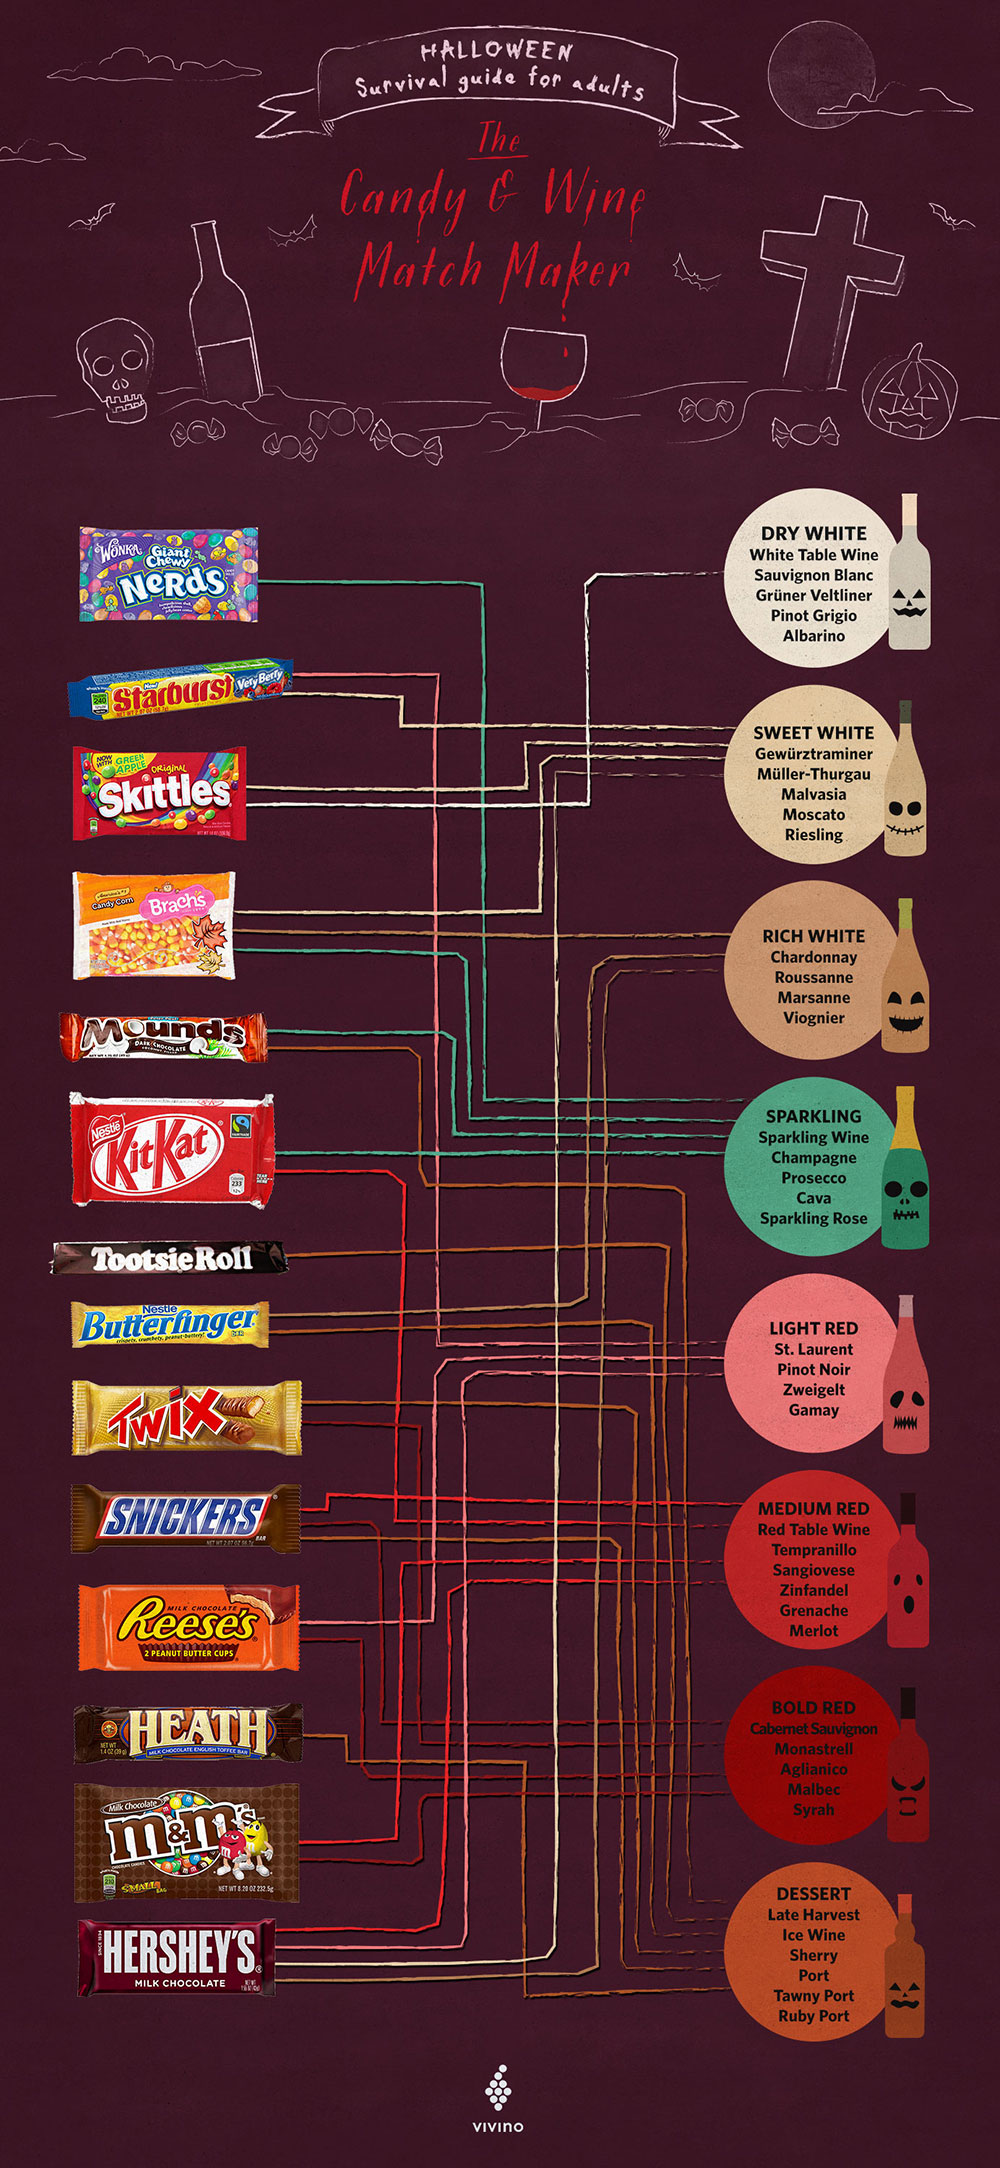 Infographic: Halloween survival guide for adults - The candy and wine matchmaker